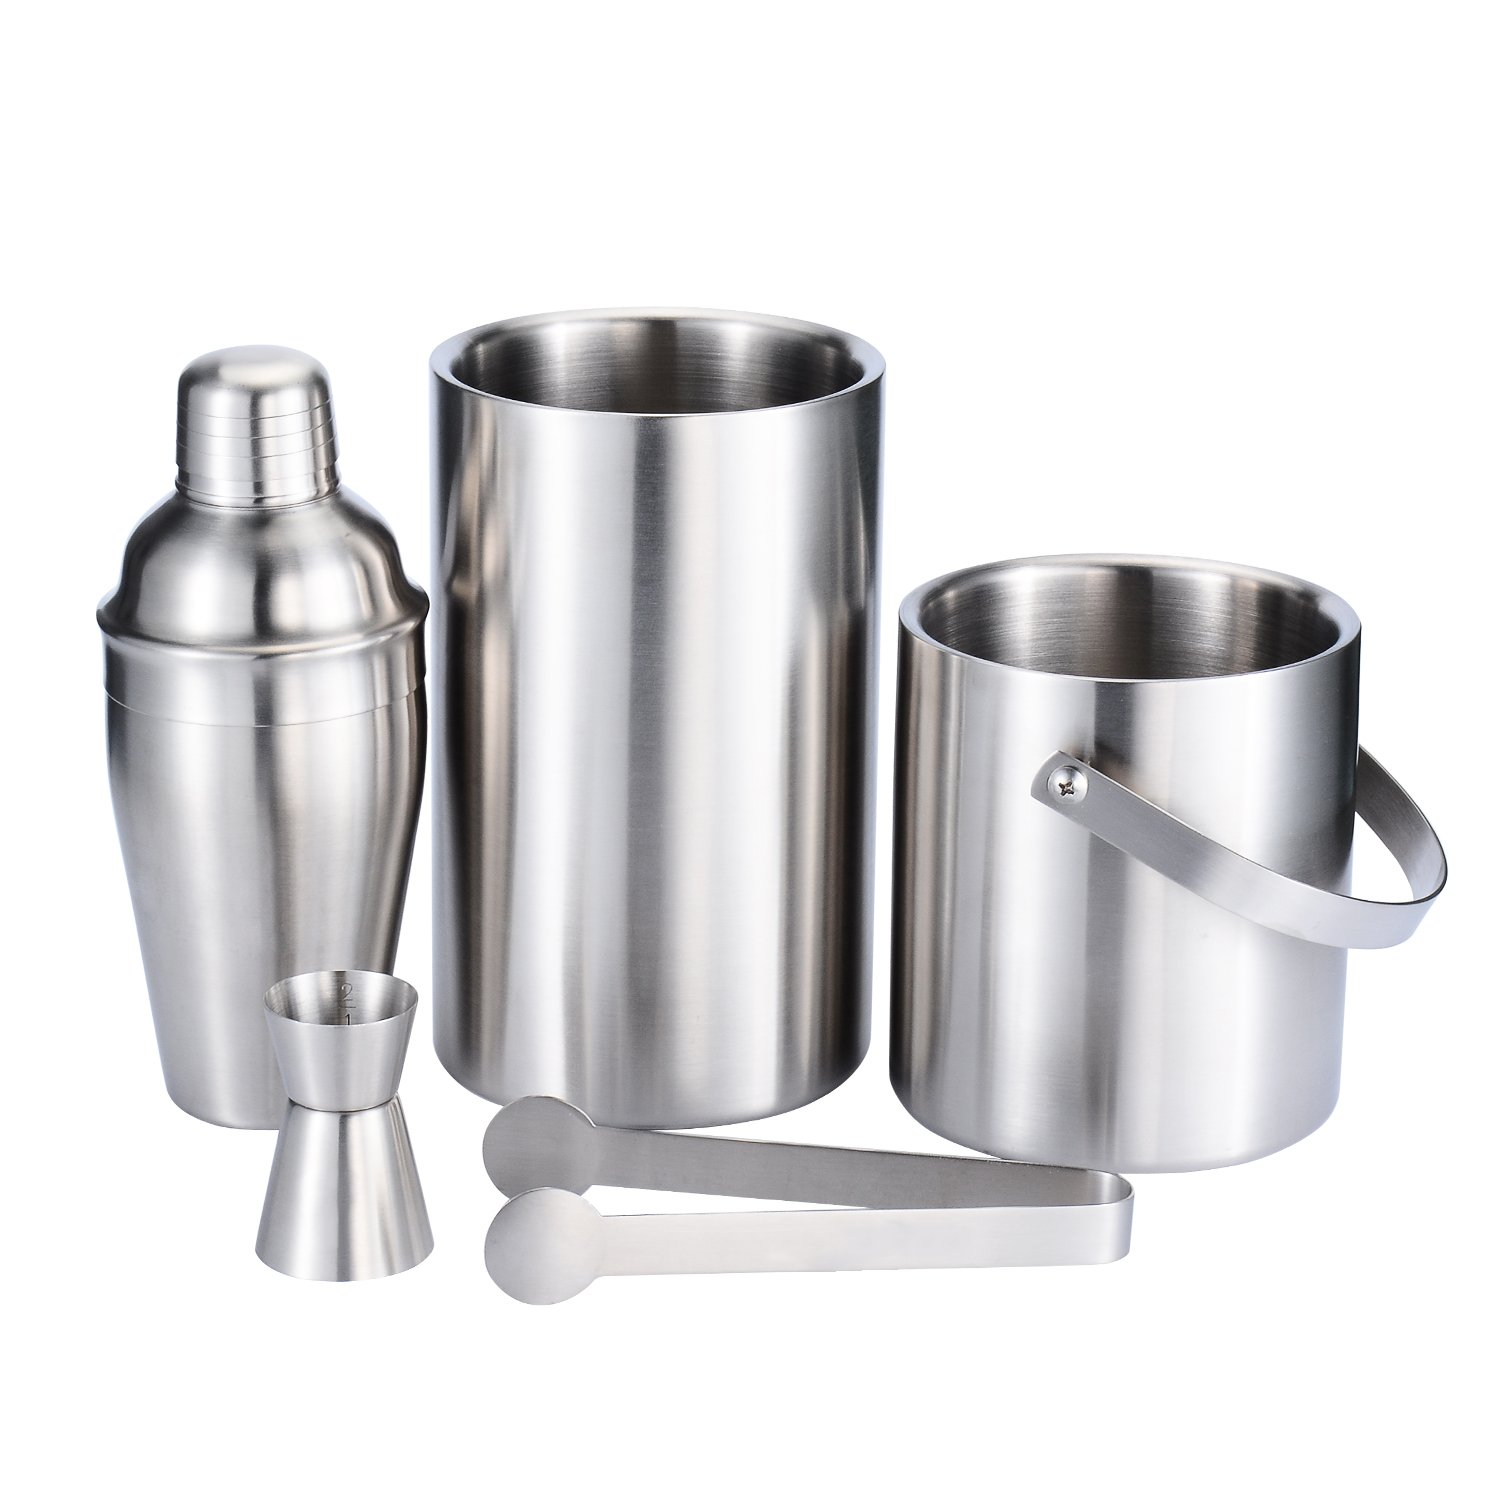 Fortune Candy Stainless Steel Bar Set, 5 Pieces Home Bar Tool Set with 52.8oz Champagne Ice Bucket with Tongs, 38.7oz Double Wall Ice Buckets, 17.6oz Cocktail Shaker, Double Measuring Jiggle 0.7/1.4oz